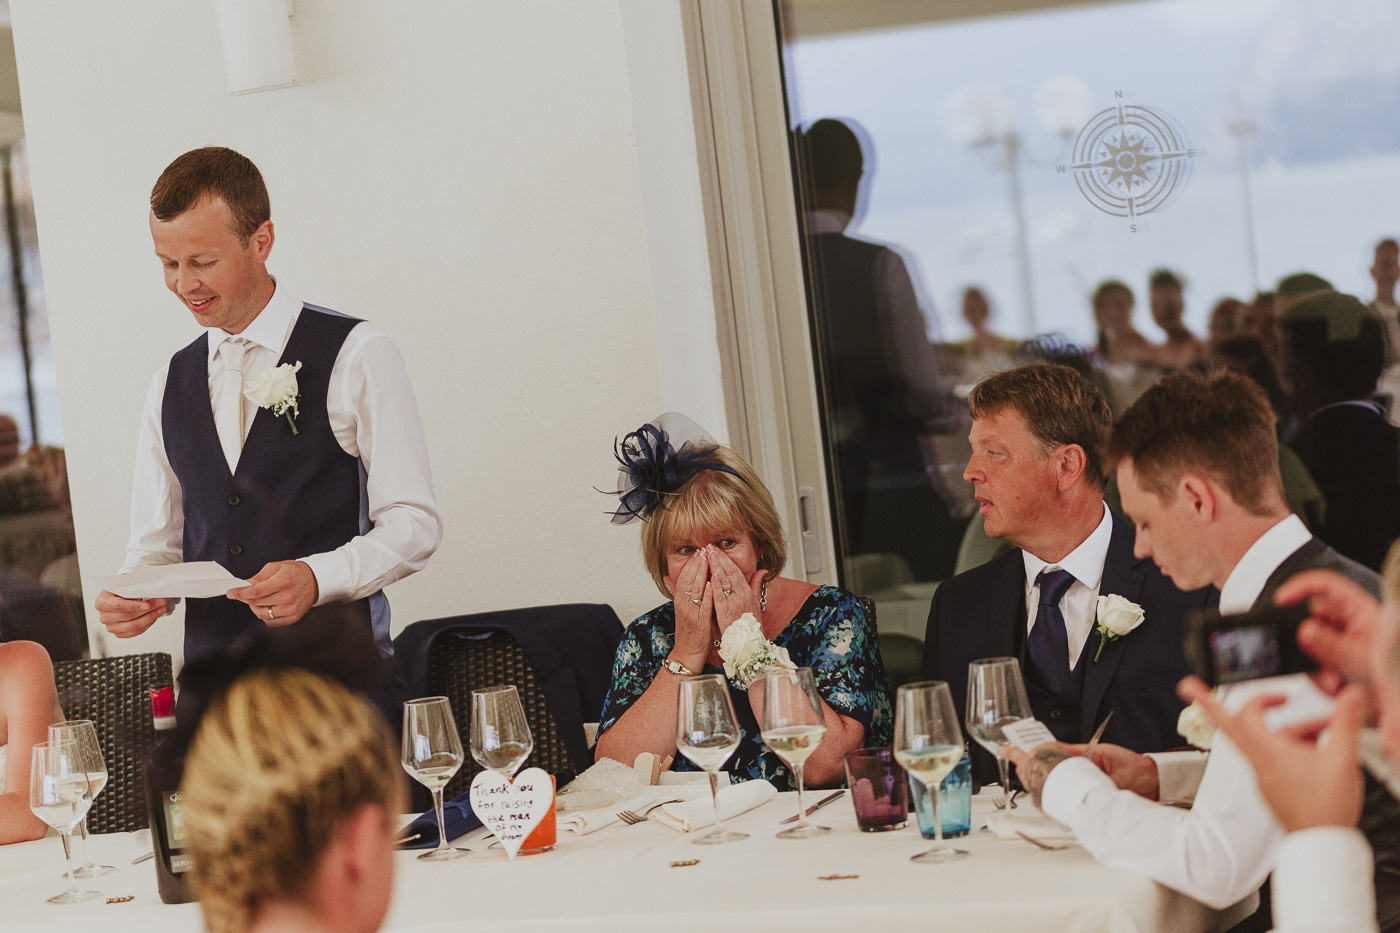 Man in waistcoat standing up during wedding speech while guests look on by Joshua Wyborn